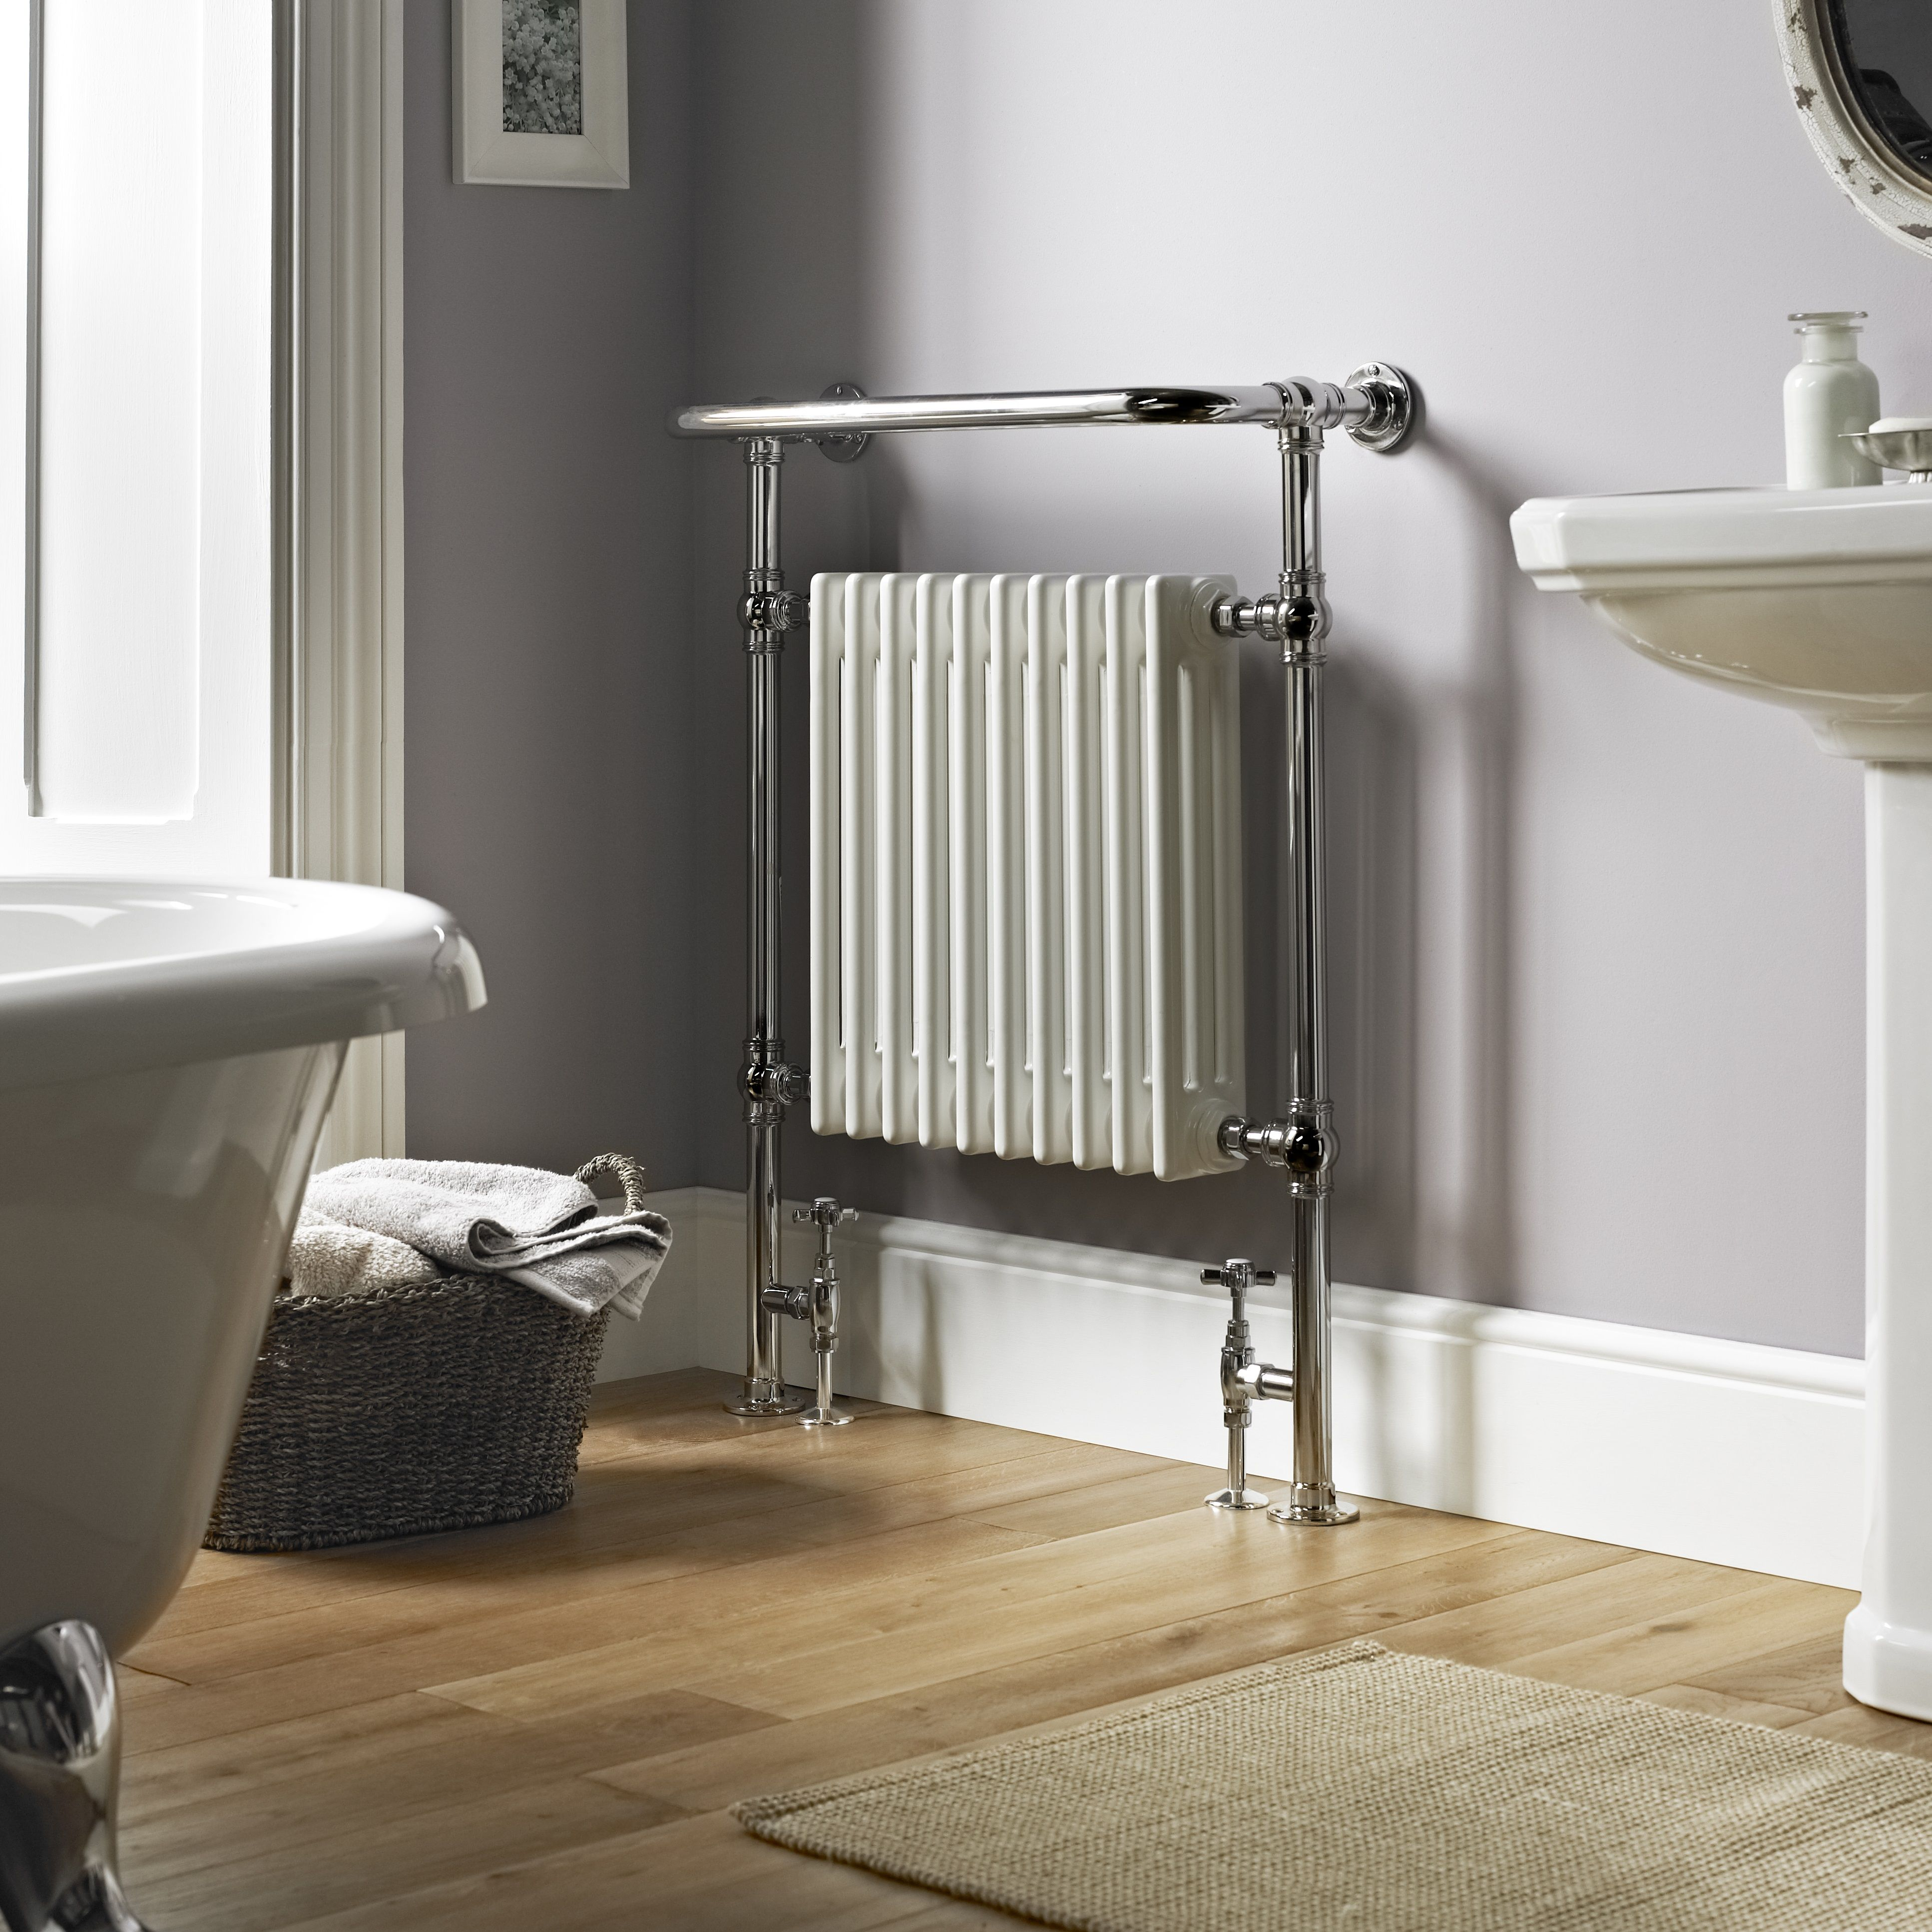 Vogue Regency floor mounted heated towel rail